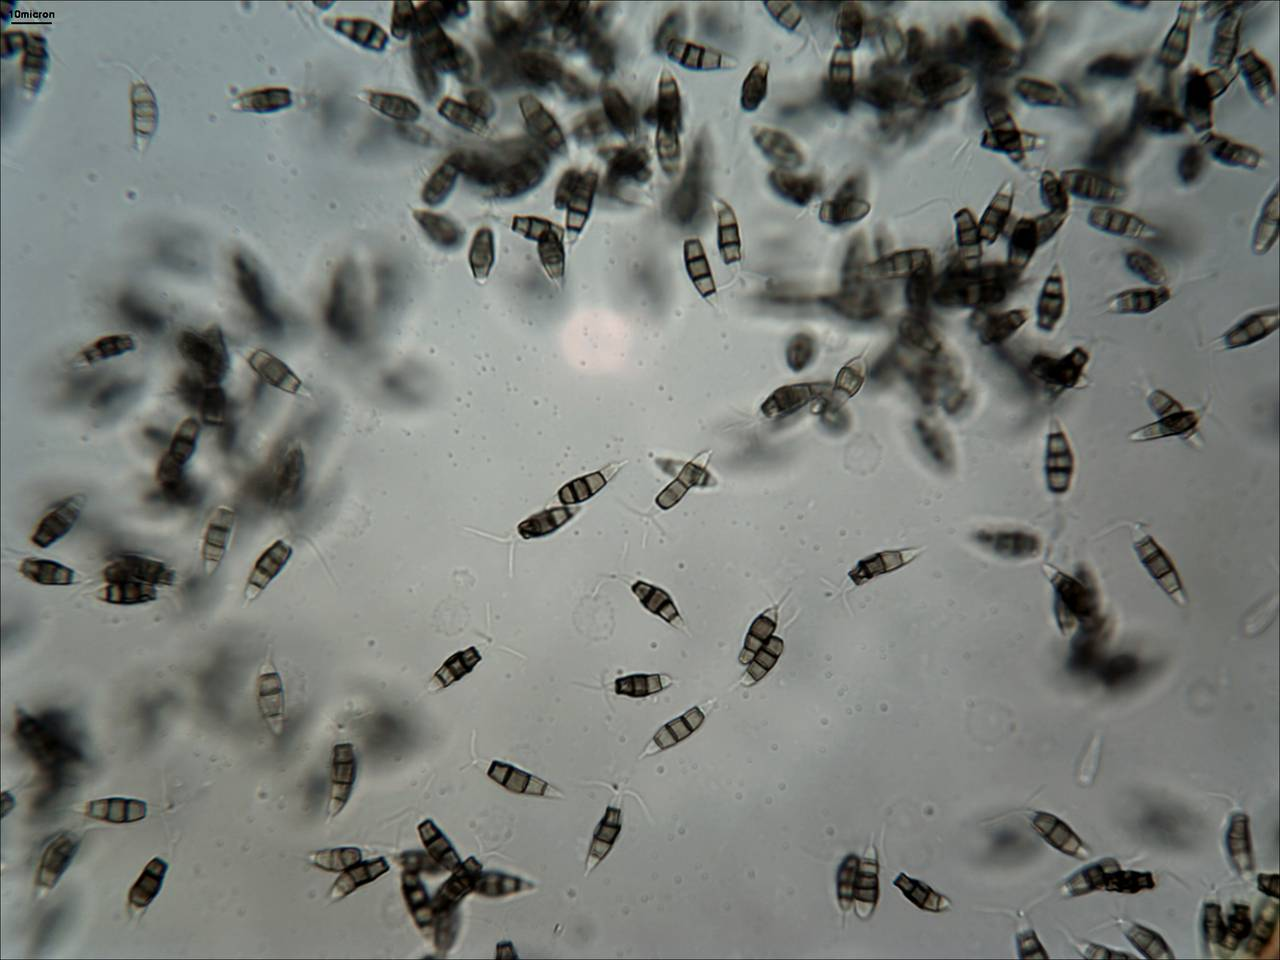 a description of pestalotiopsis microspora The present invention relates to the novel isolated 12-30 strain of pestalotiopsis microspora capable of producing novel antioxidant and antimycotic agents.